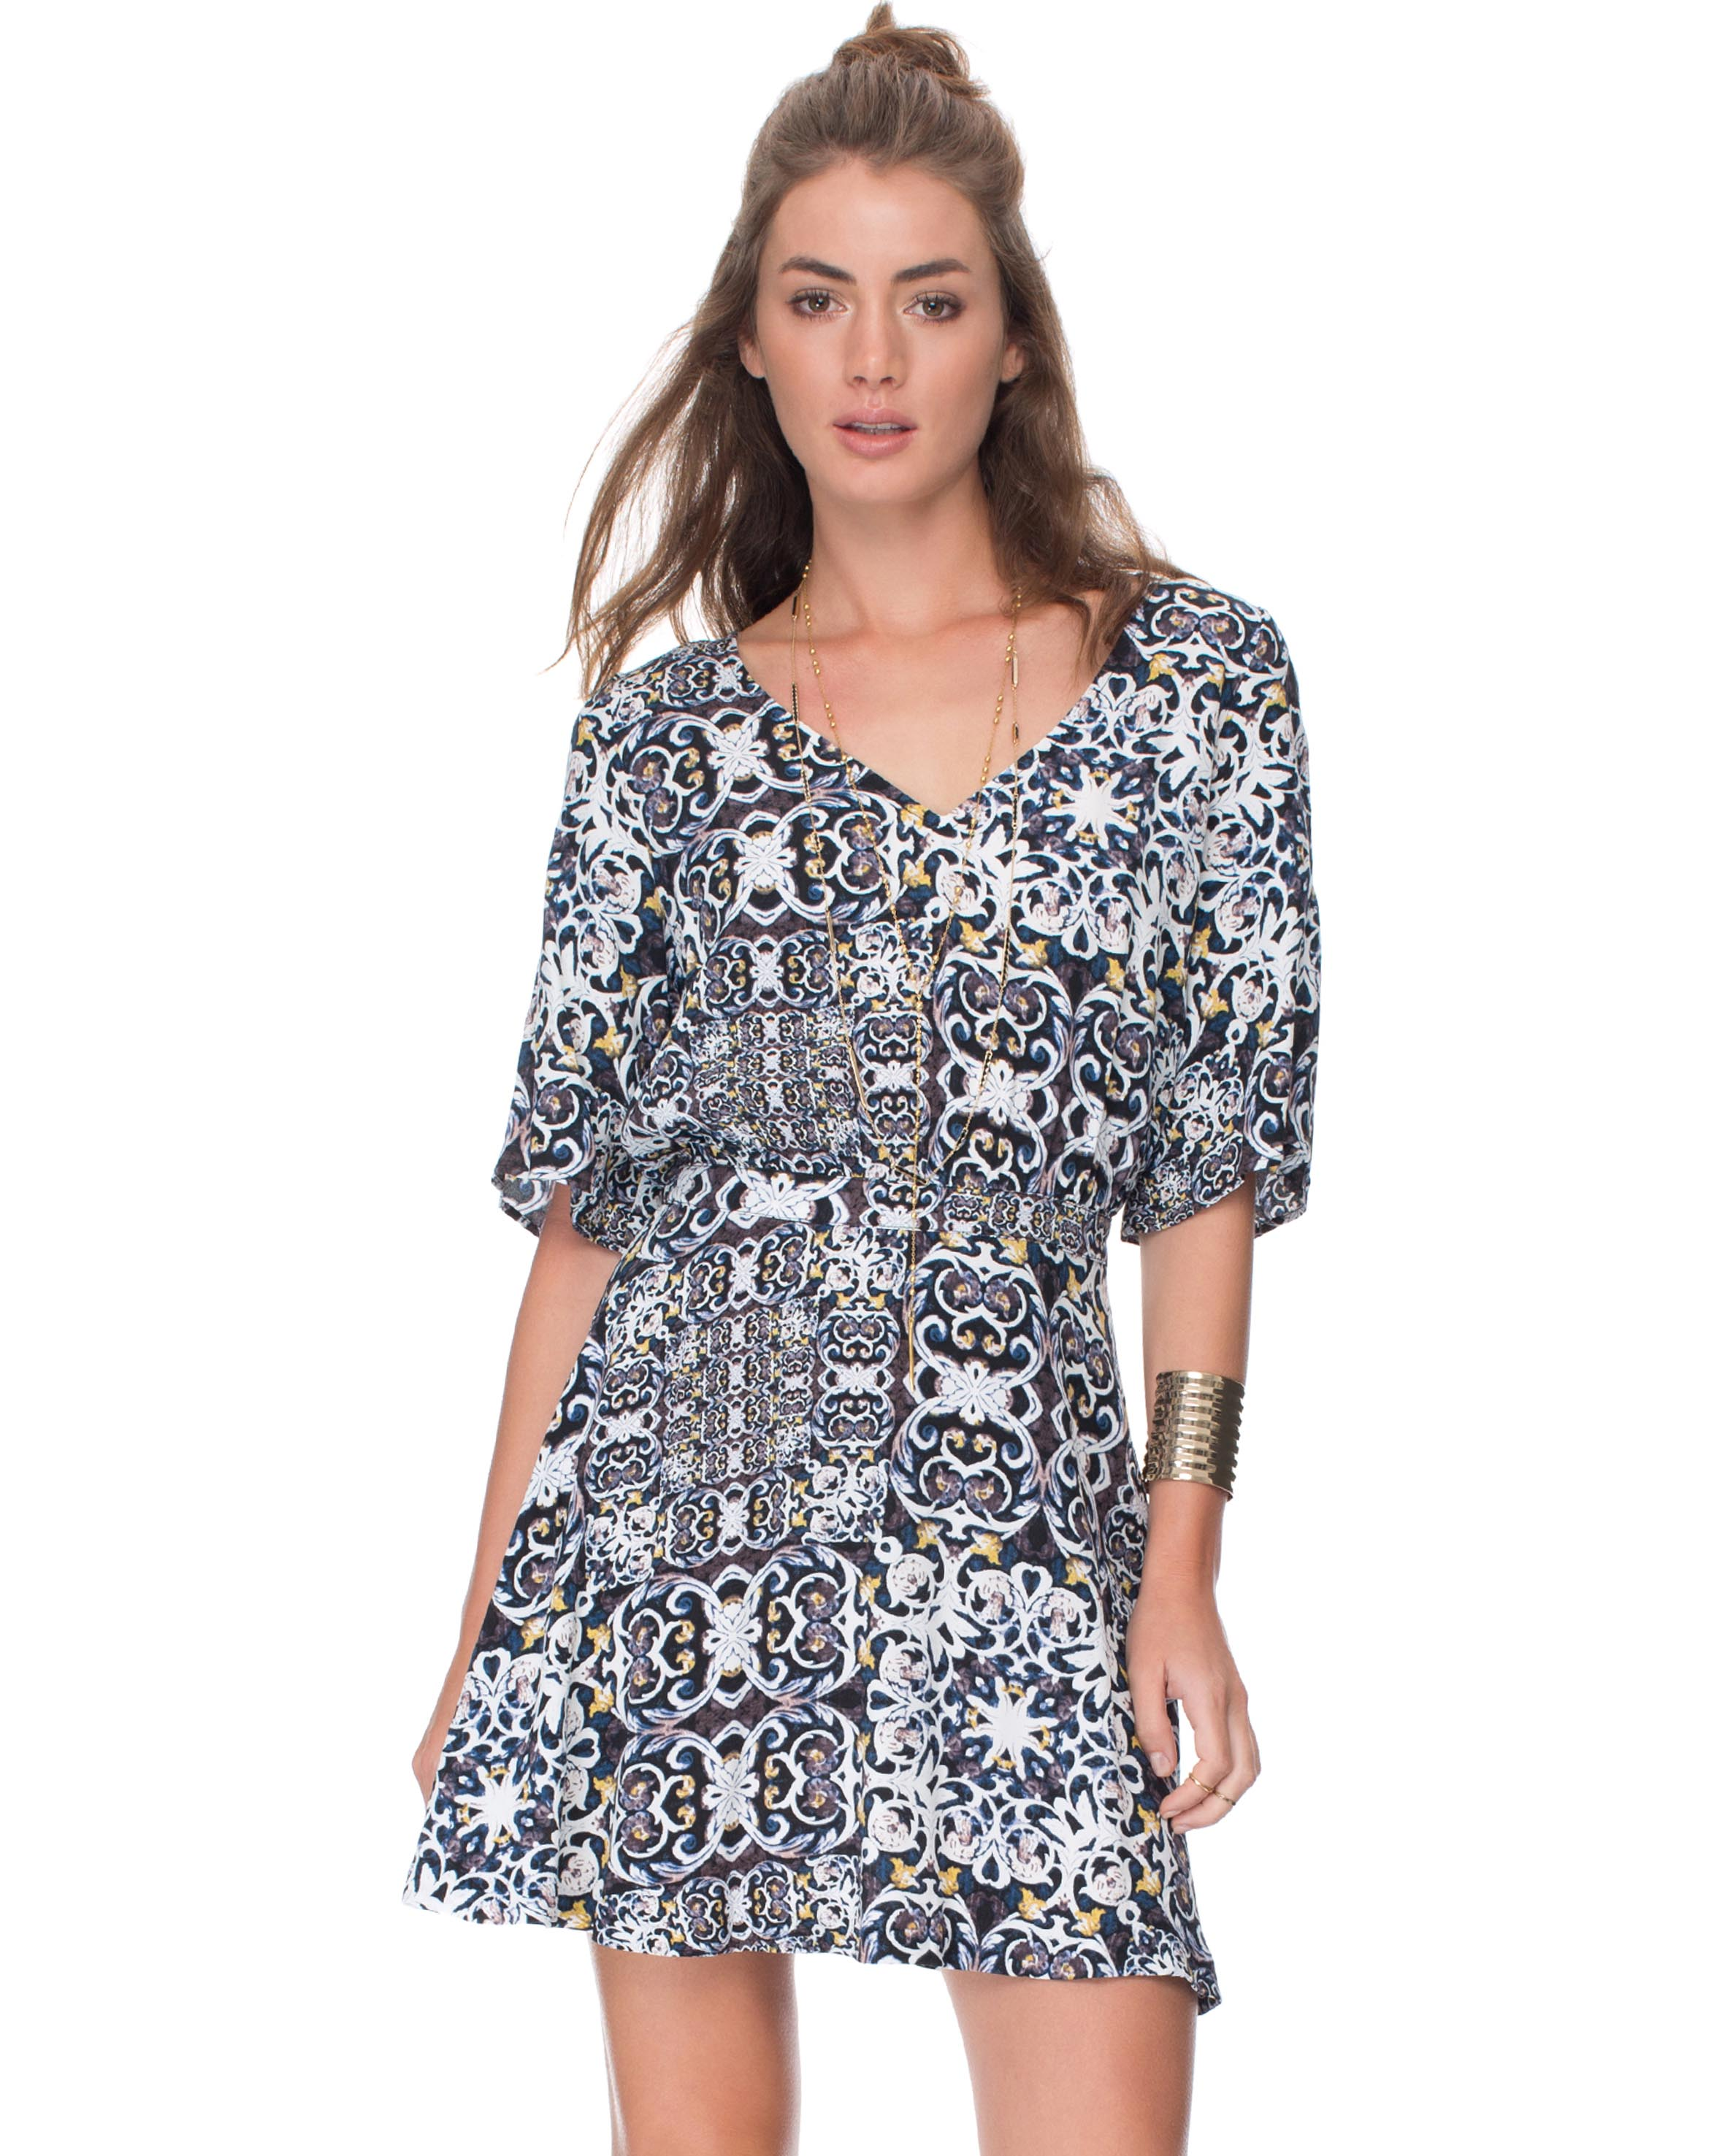 Tiger lily clothing store. Cheap online clothing stores